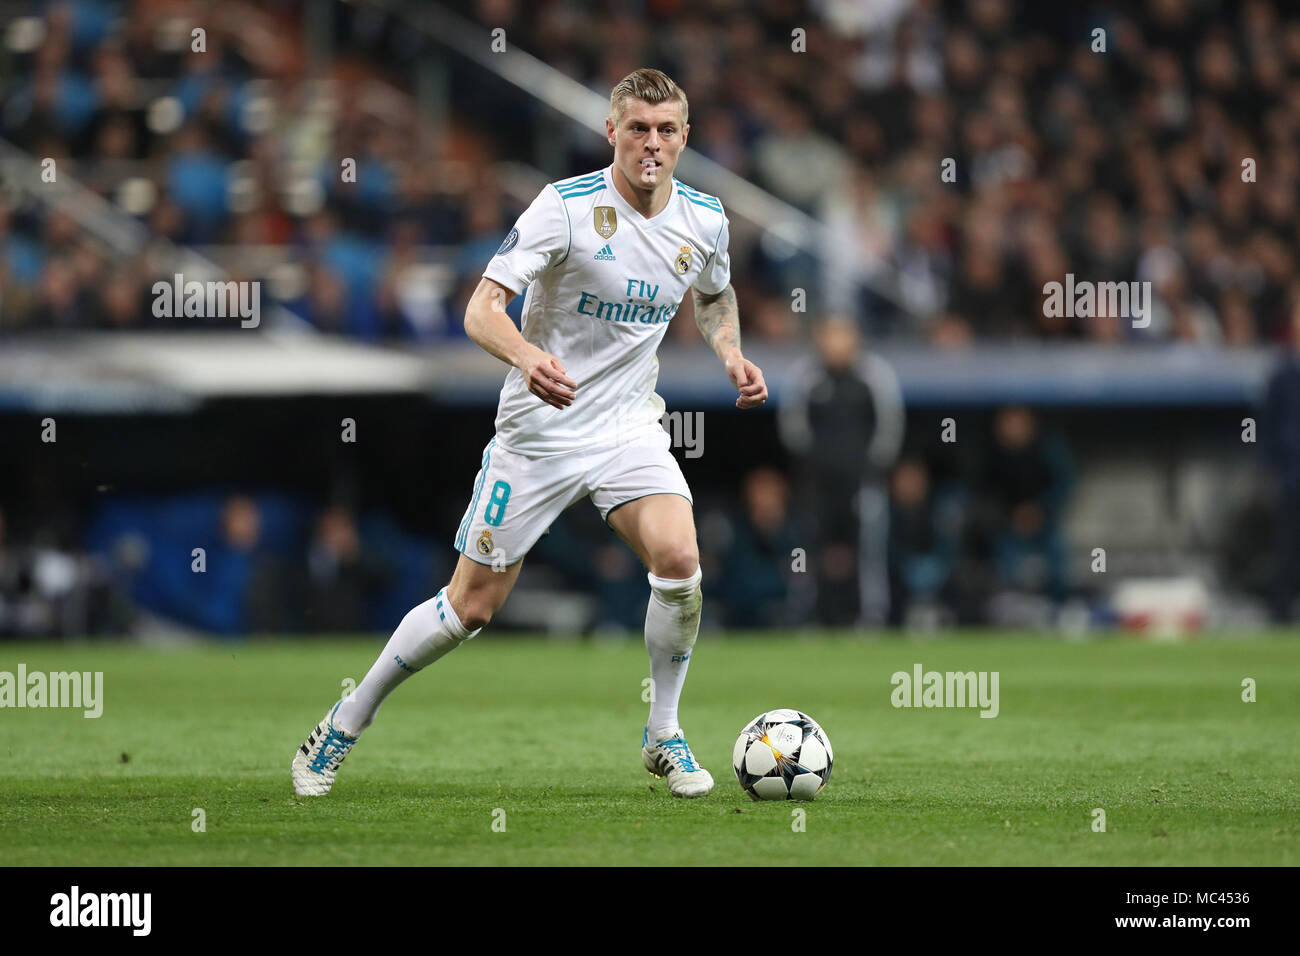 Madrid, Spain. 11th Apr, 2018. TONI KROOS of Real Madrid during the UEFA Champions League, quarter final, 2nd leg football match between Real Madrid CF and Juventus FC on April 11, 2018 at Santiago Bernabeu stadium in Madrid, Spain Credit: Manuel Blondeau/ZUMA Wire/Alamy Live News - Stock Image